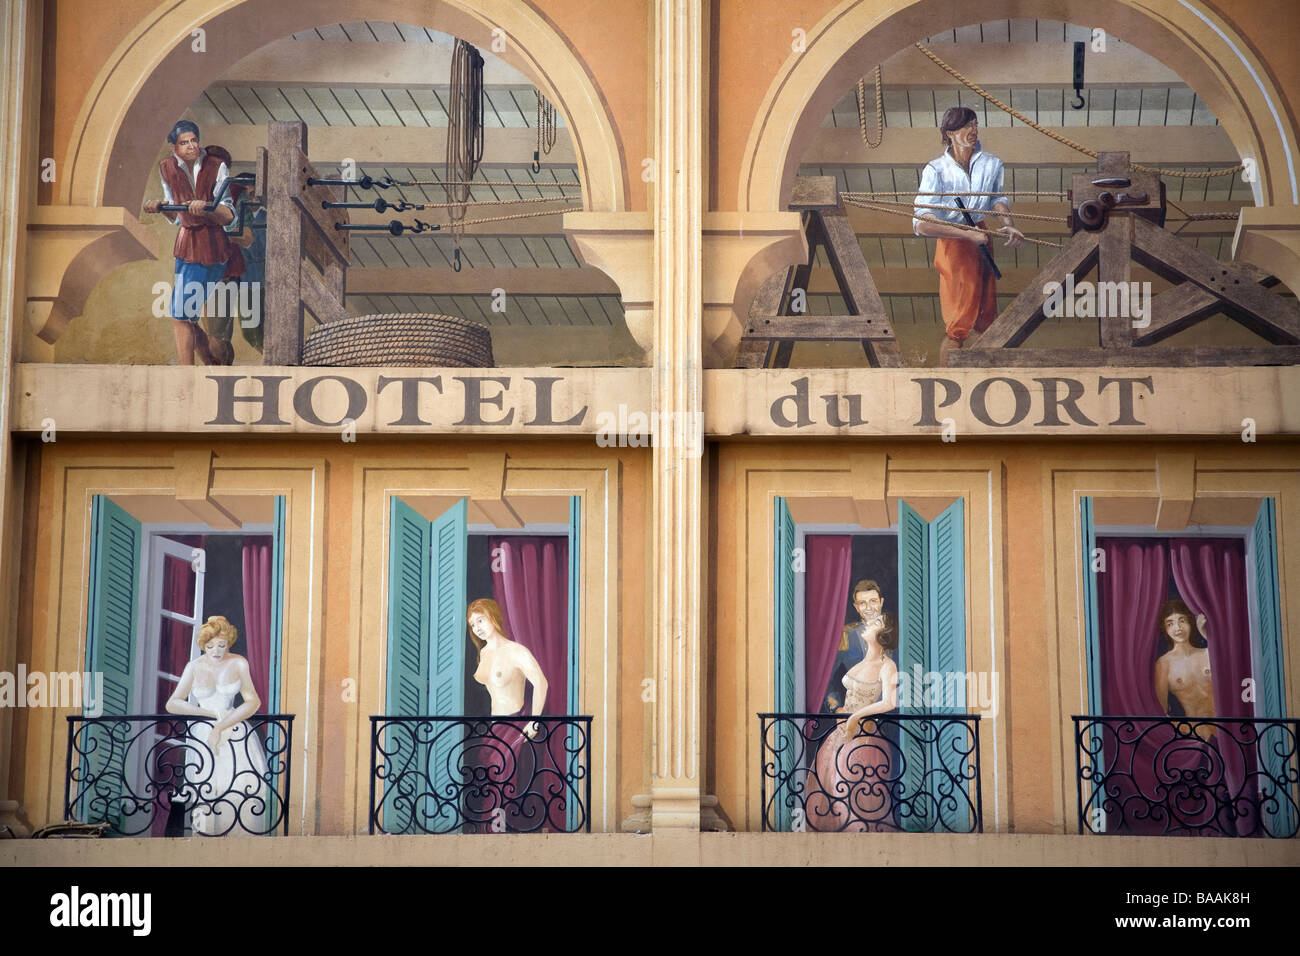 Trompe L Oeil Wall Murals   Stock Photo Trompe L Oeil Mural On The Wall Of